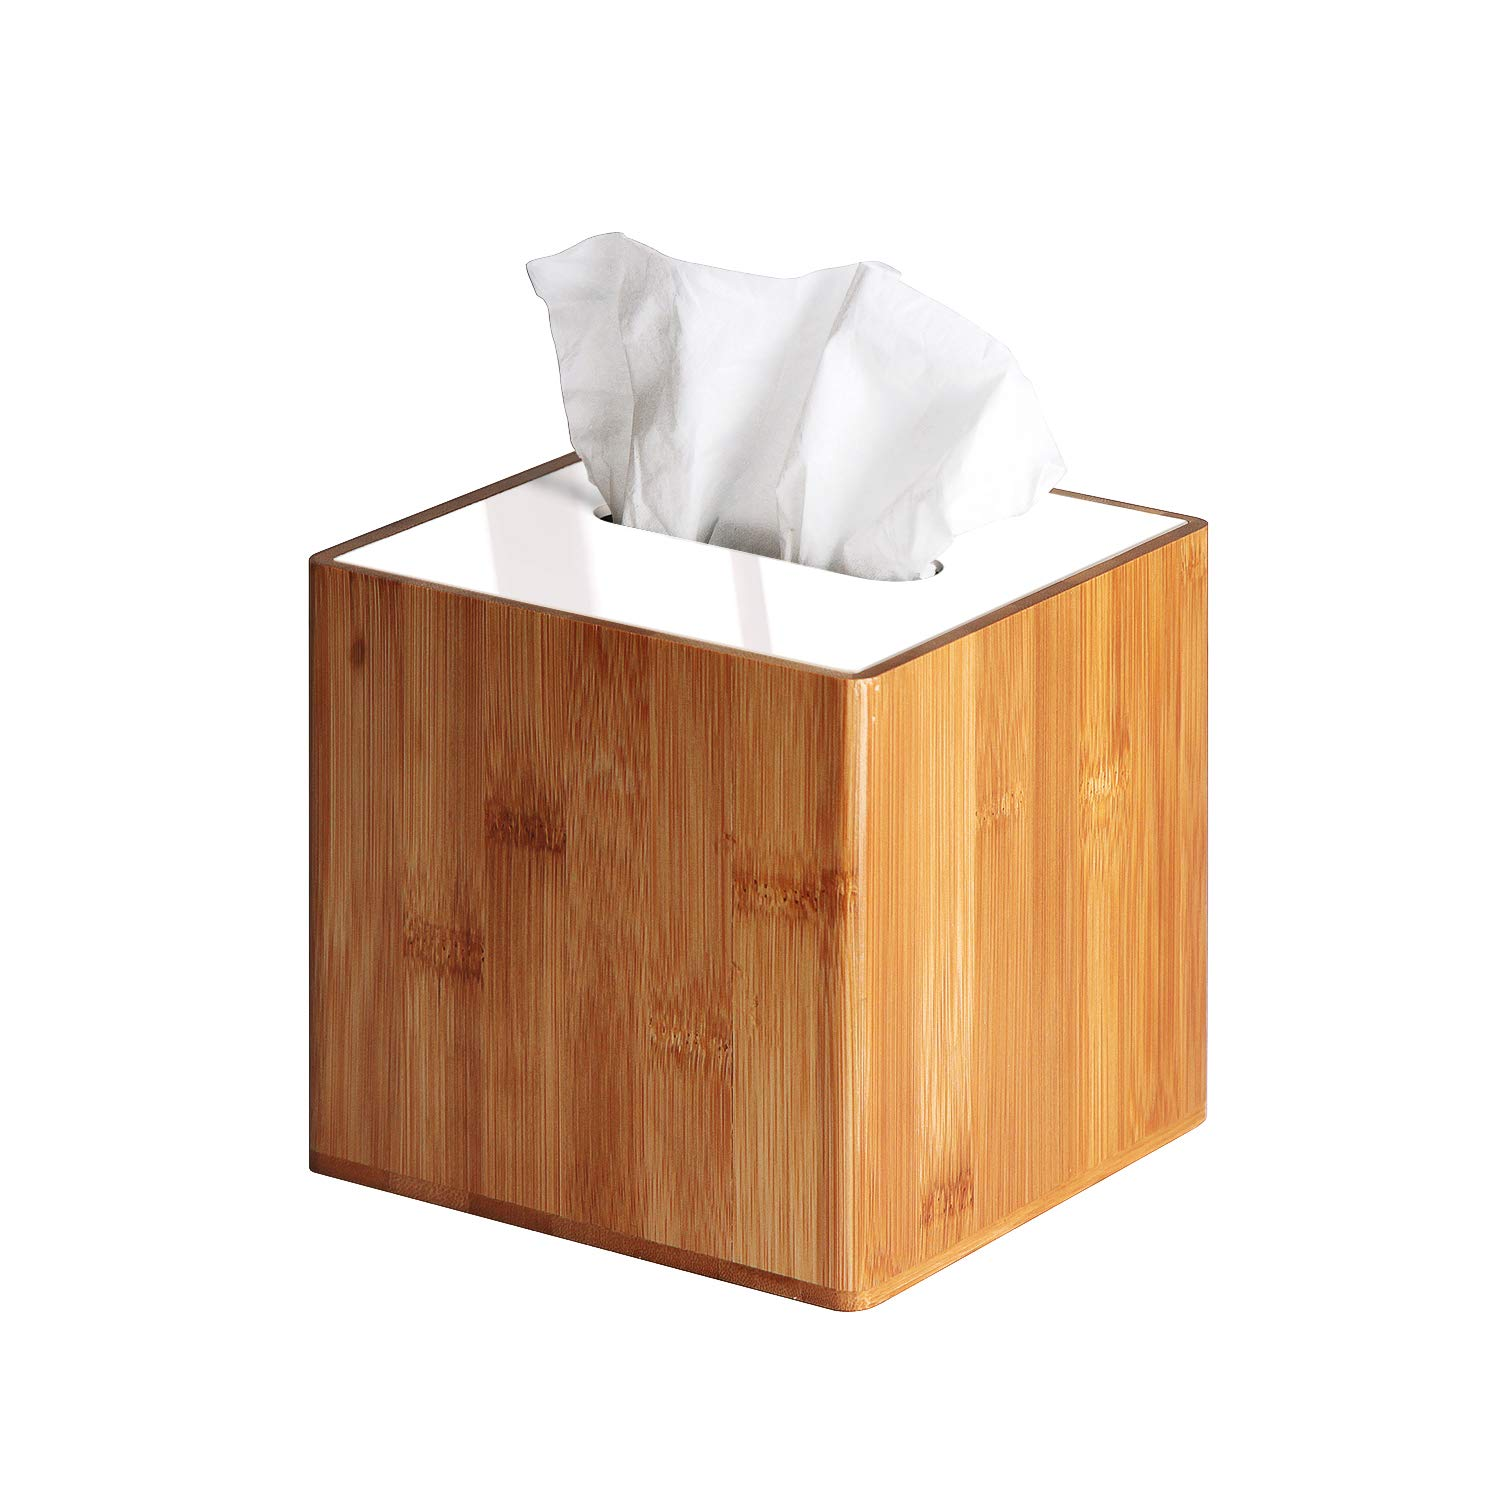 JackCubeDesign Bamboo Square Tissue Box White Acrylic Cover Holder Case Kleenex Storage Case Stand Box Napkin Holder Organizer (5.83 x 5.83 x 5.67 inches)-:MK340A by JackCubeDesign